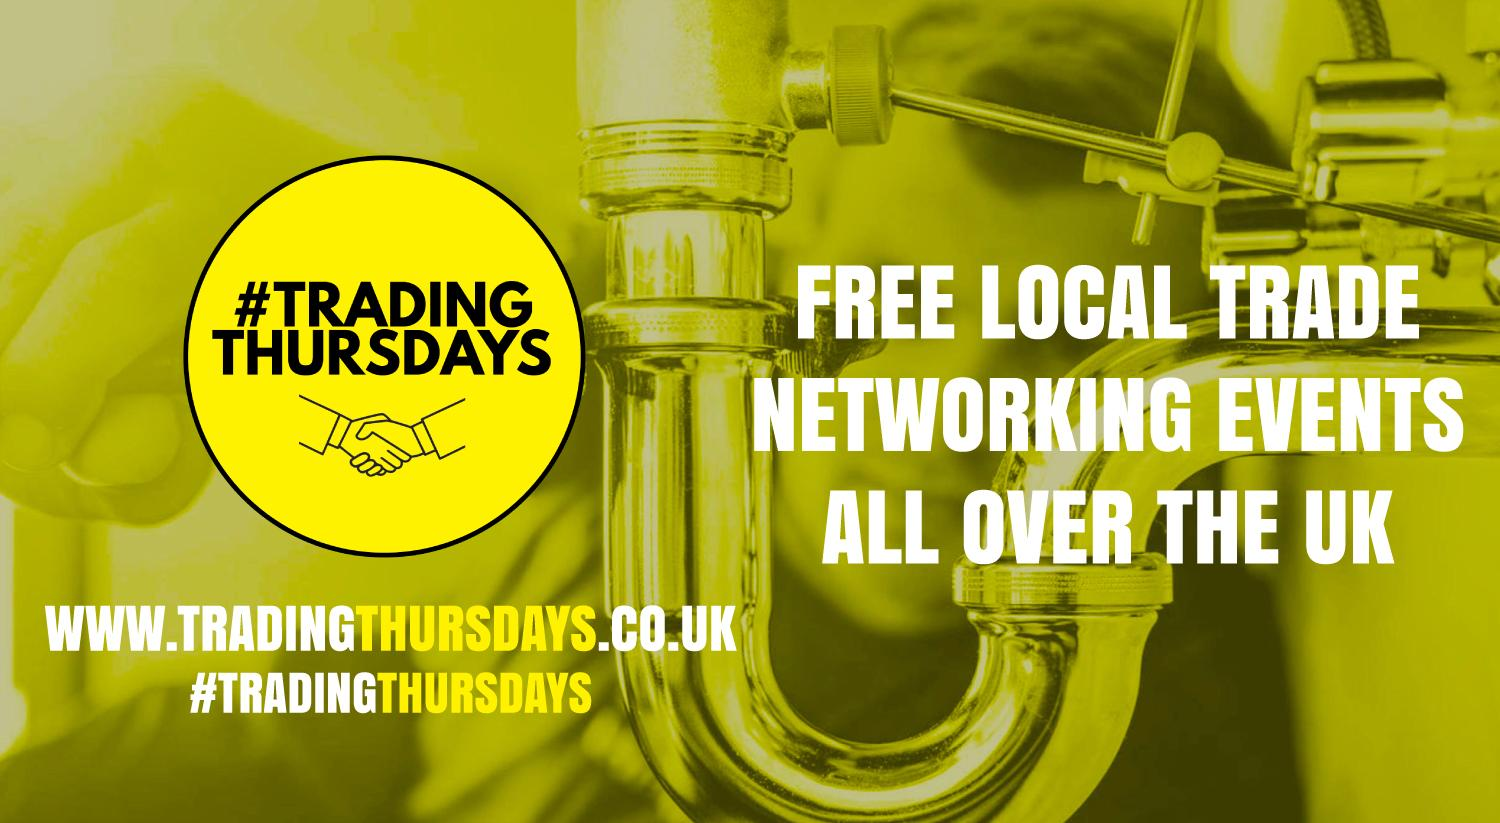 Trading Thursdays! Free networking event for traders in Wigan